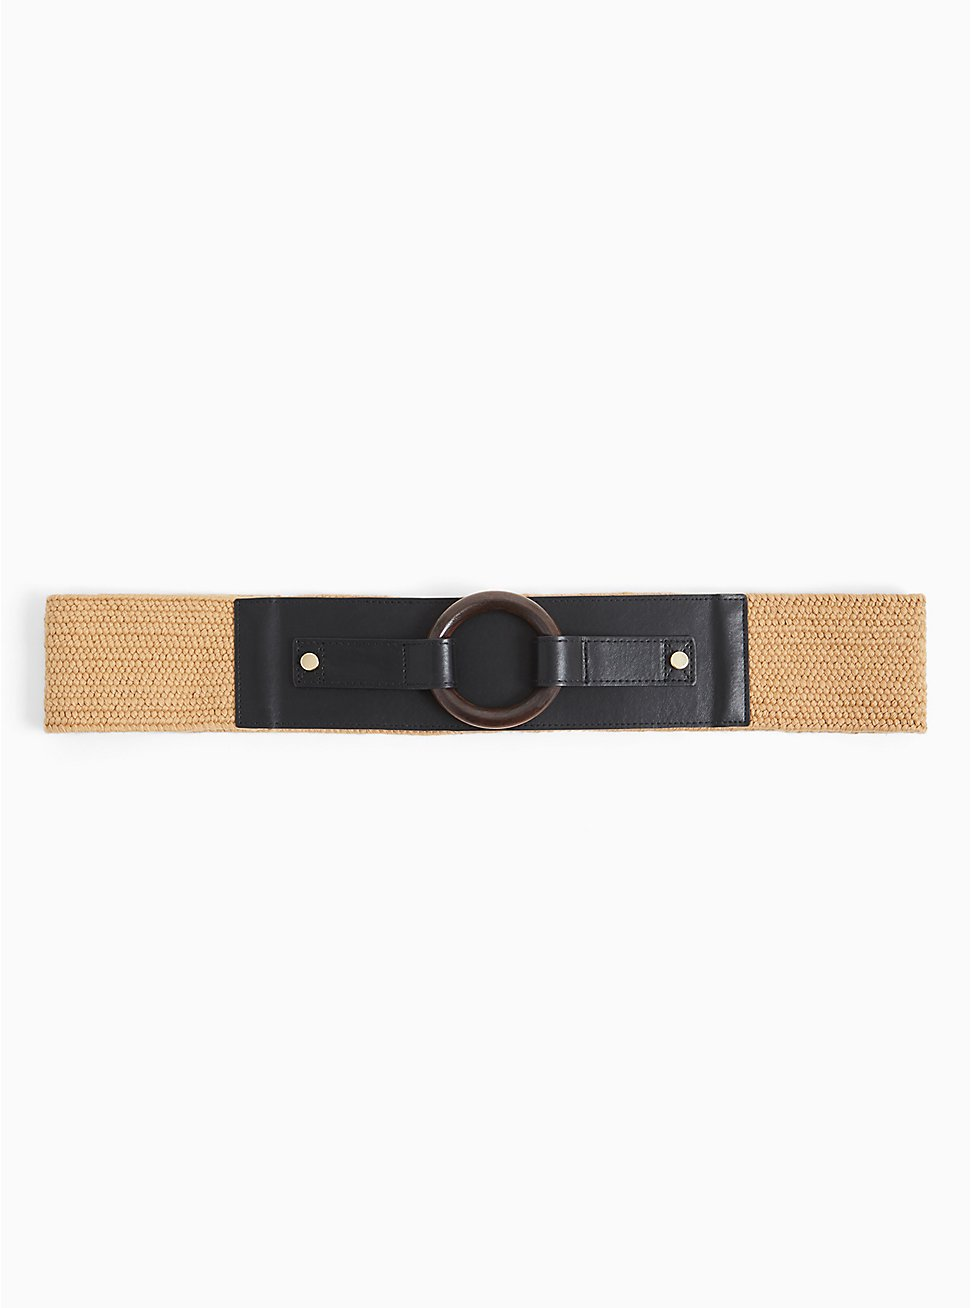 Black Faux Leather & Tan Straw Stretch Belt, IVORY, hi-res